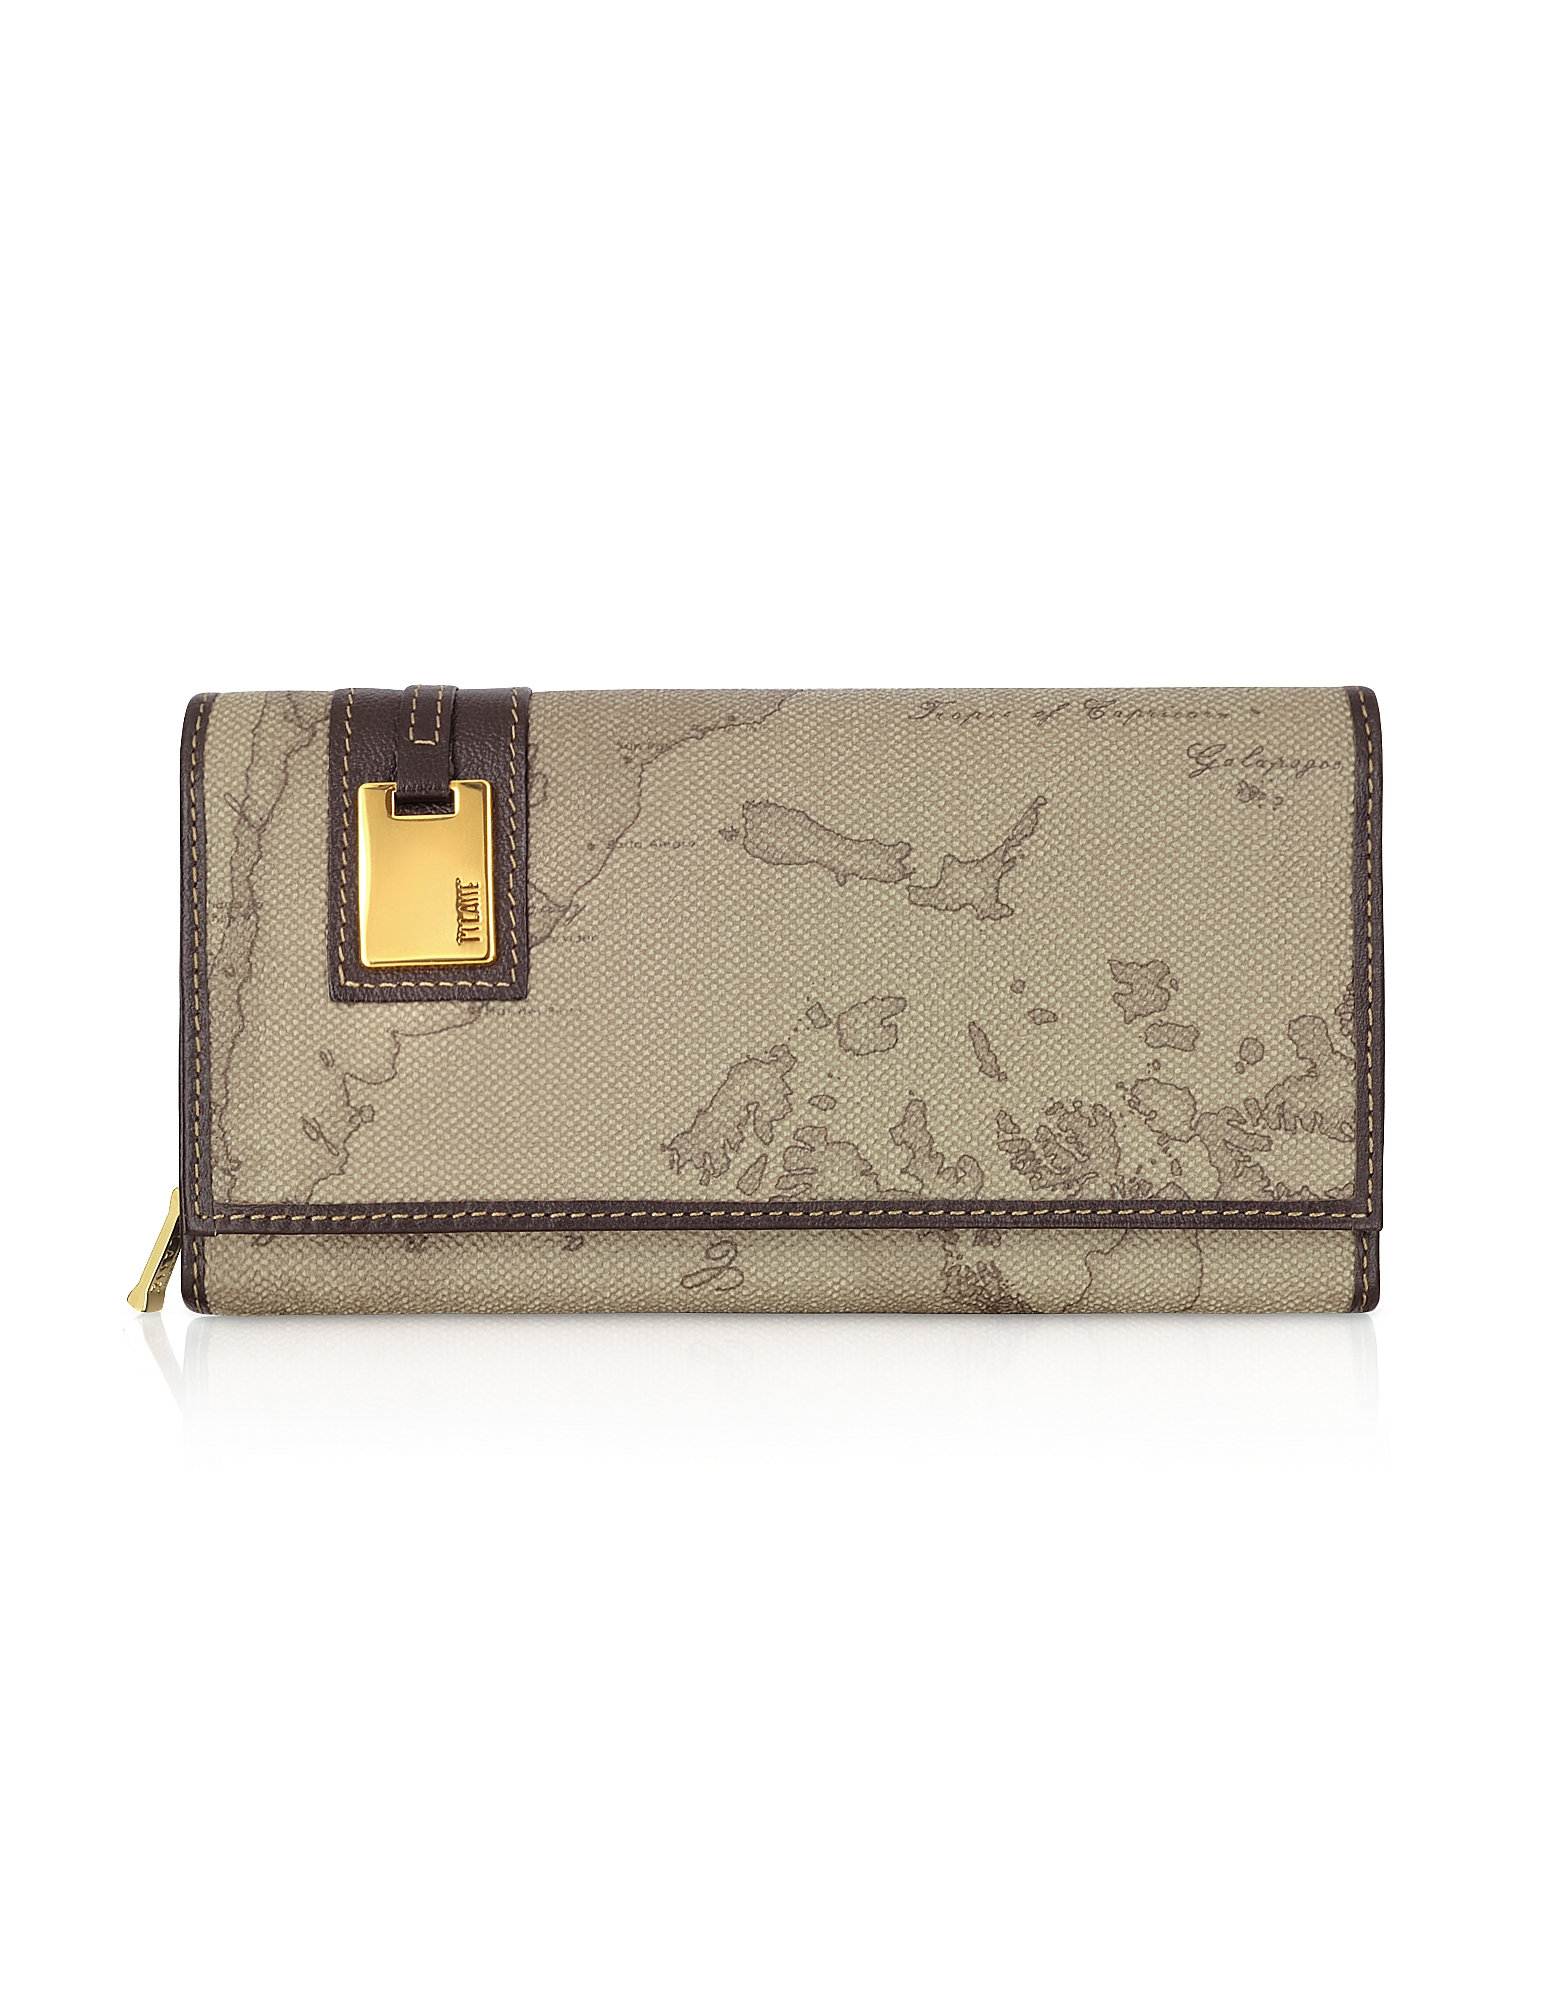 Alviero Martini 1A Classe Wallets, Large Women's Medium ID Flap Wallet